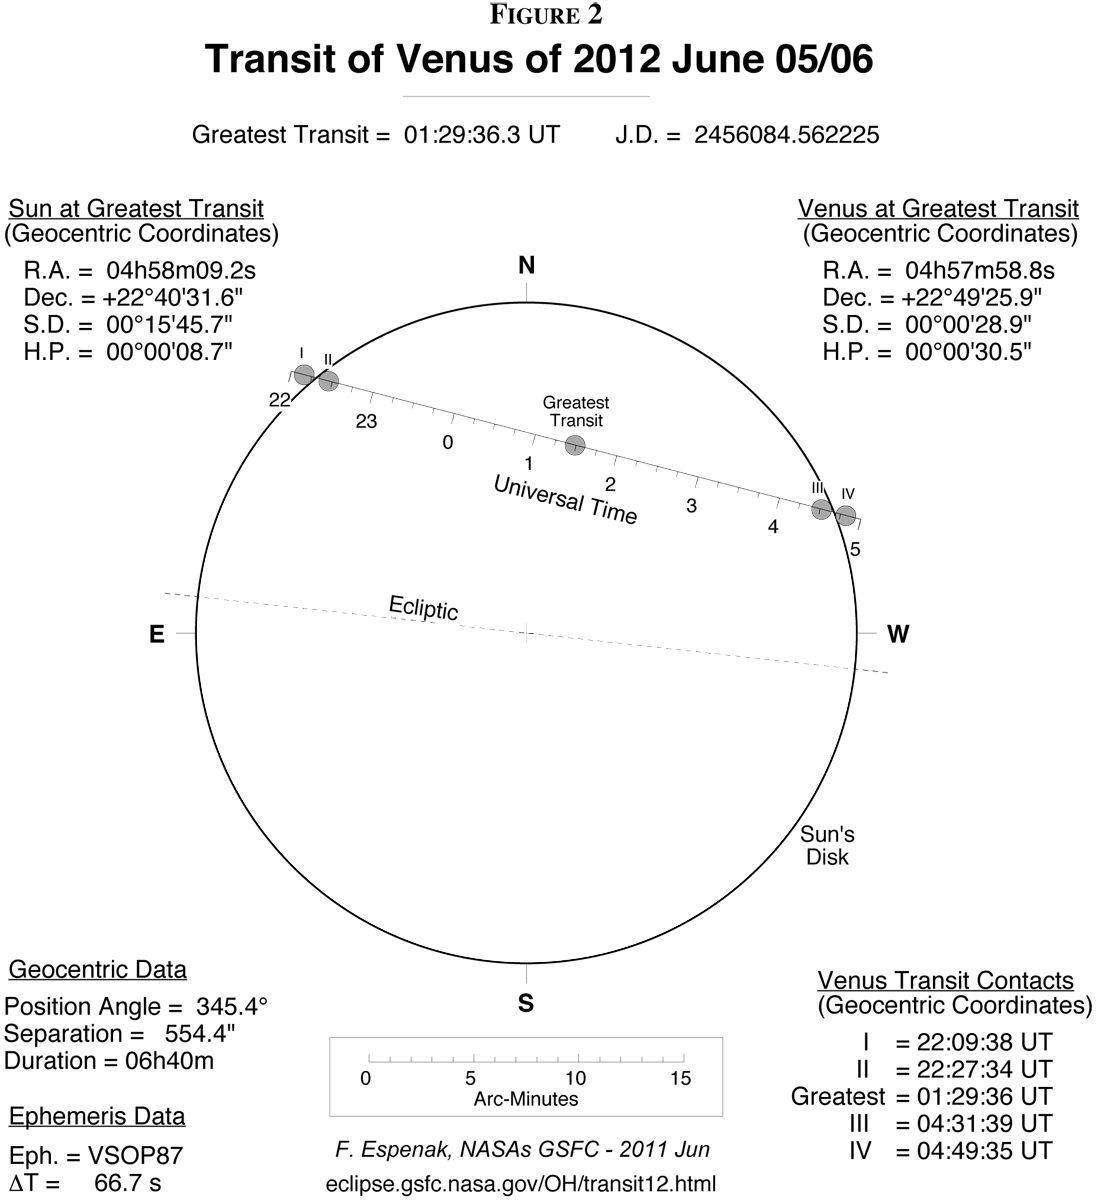 Transit of Venus 2012 Diagram